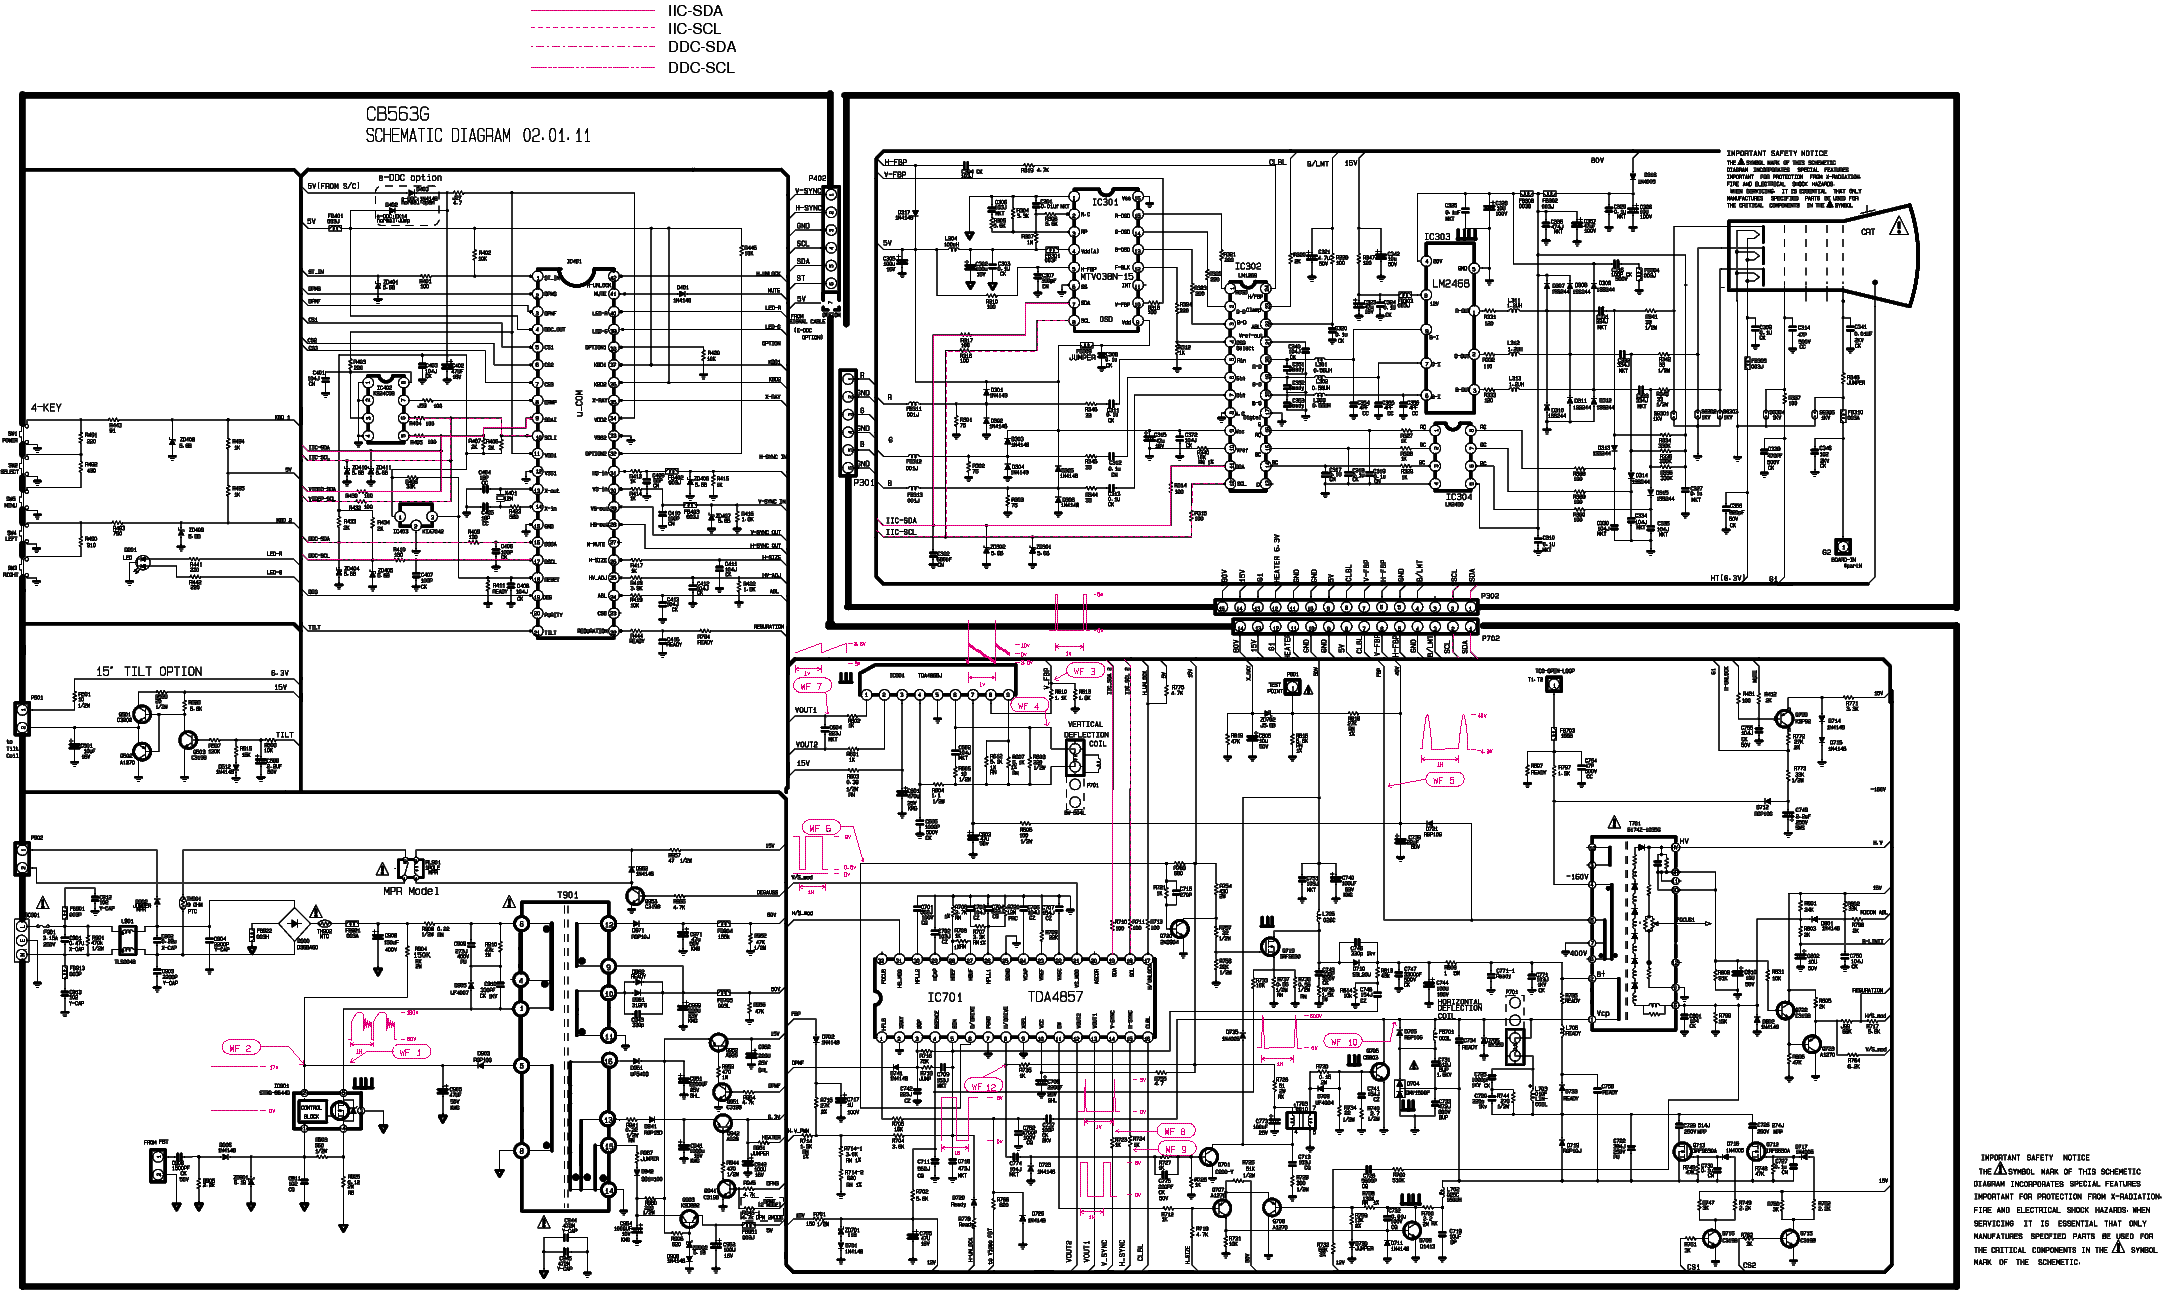 Lg Crt Tv Circuit Diagram Free Download Wiring Midoriva Yhgfdmuor Net Service Manual Pdf Led